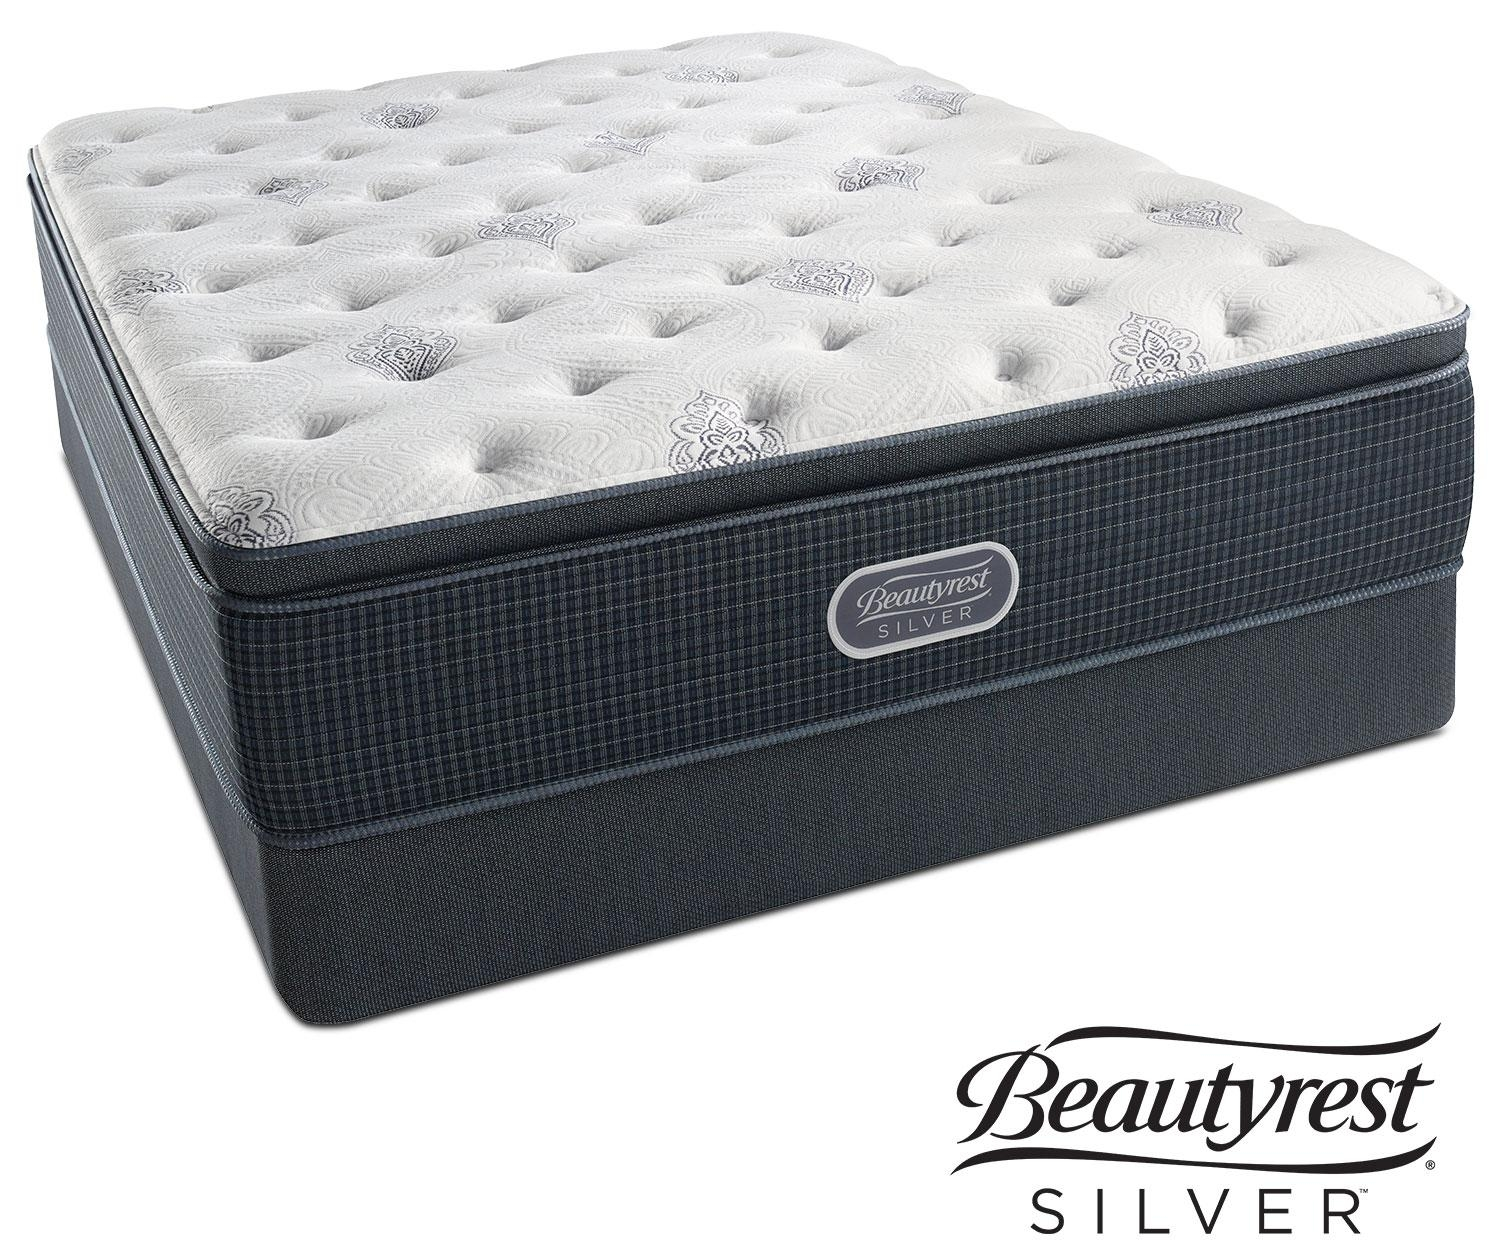 Queen Mattress Sets | Value City Furniture With Queen Mattress Sets (Image 17 of 20)